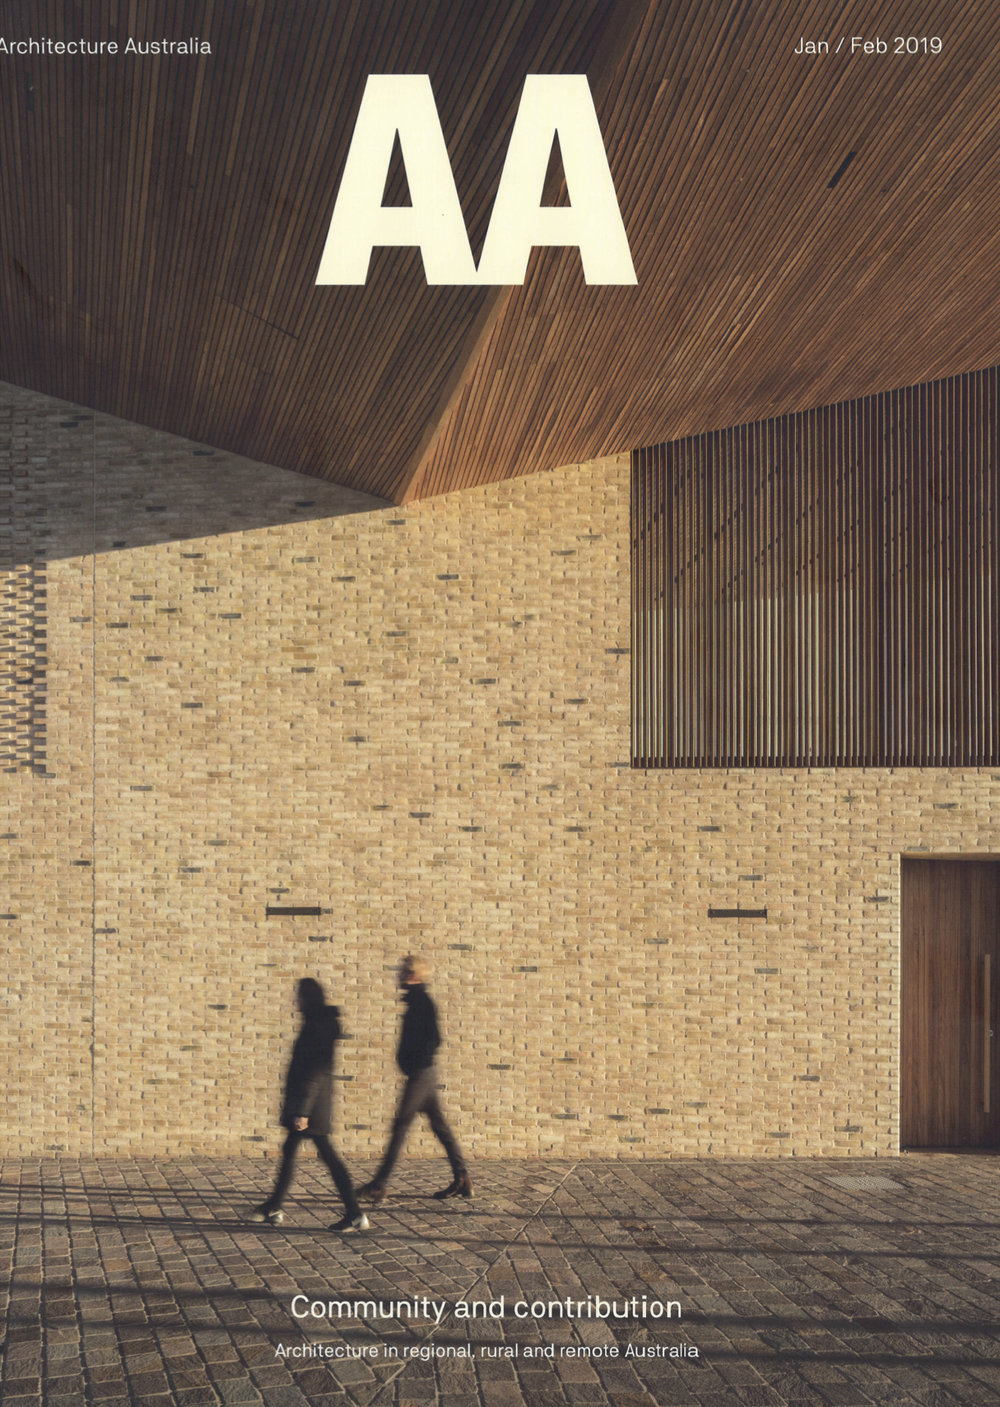 AIA Front.jpg